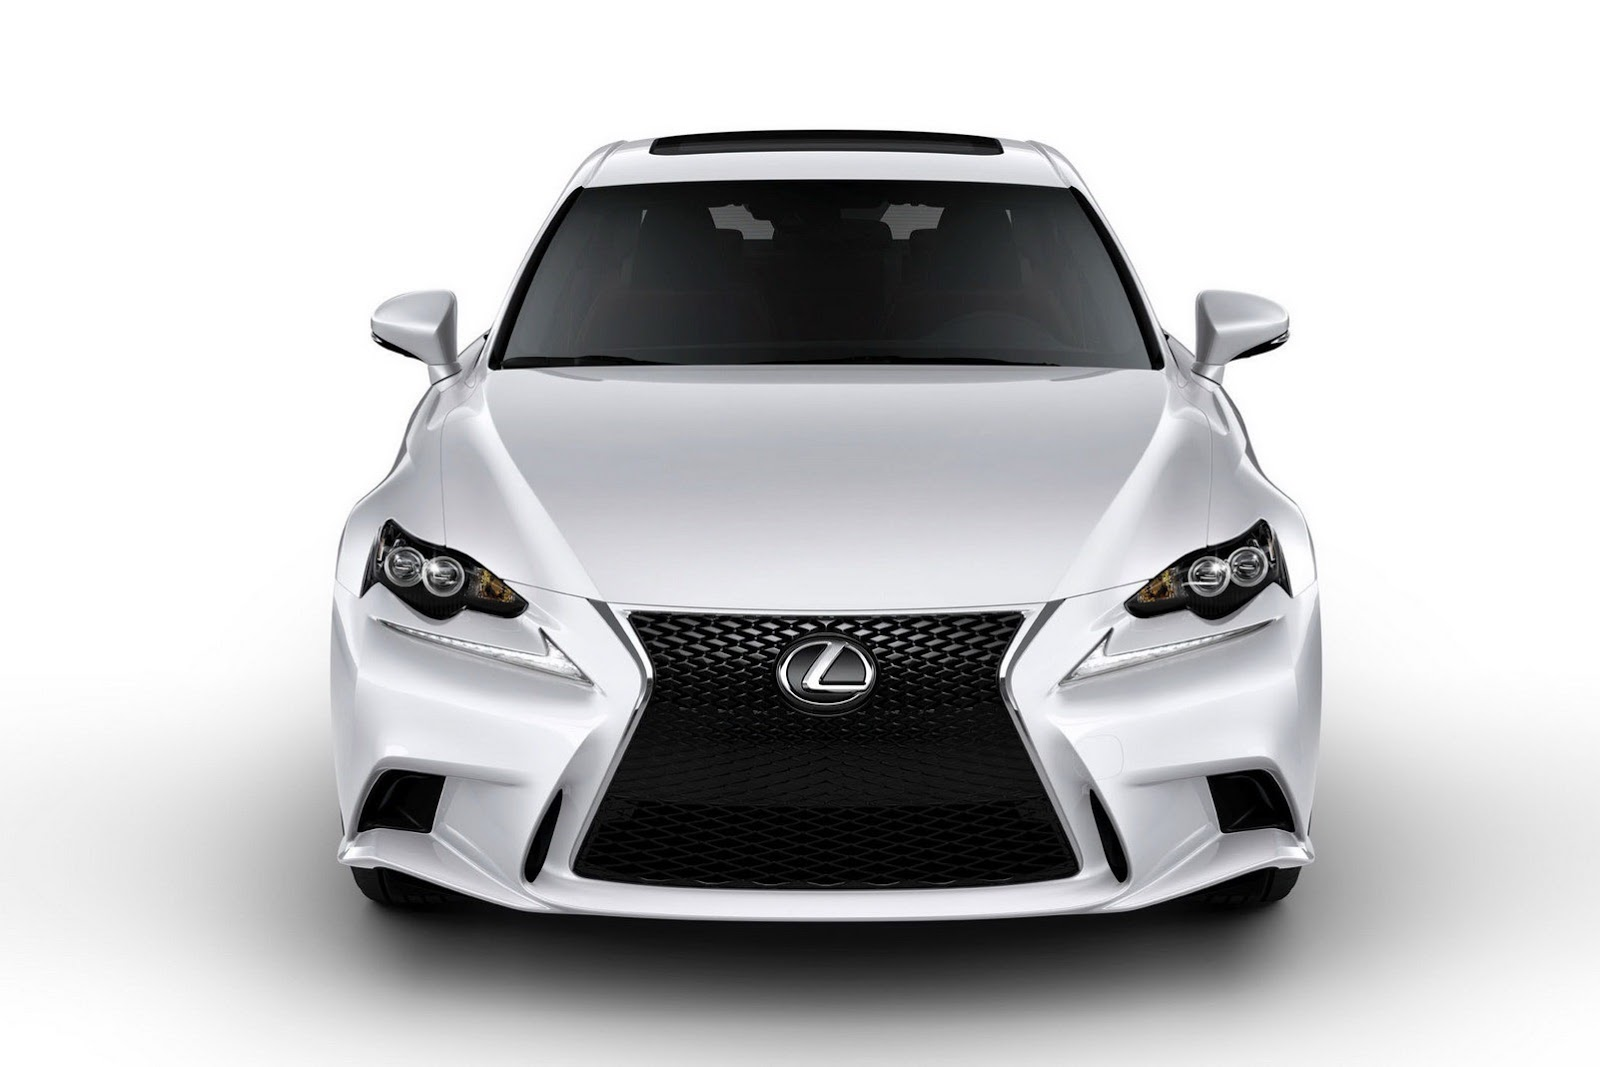 https://s1.cdn.autoevolution.com/images/news/gallery/2014-lexus-is-us-pricing-announced-photo-gallery_7.jpg